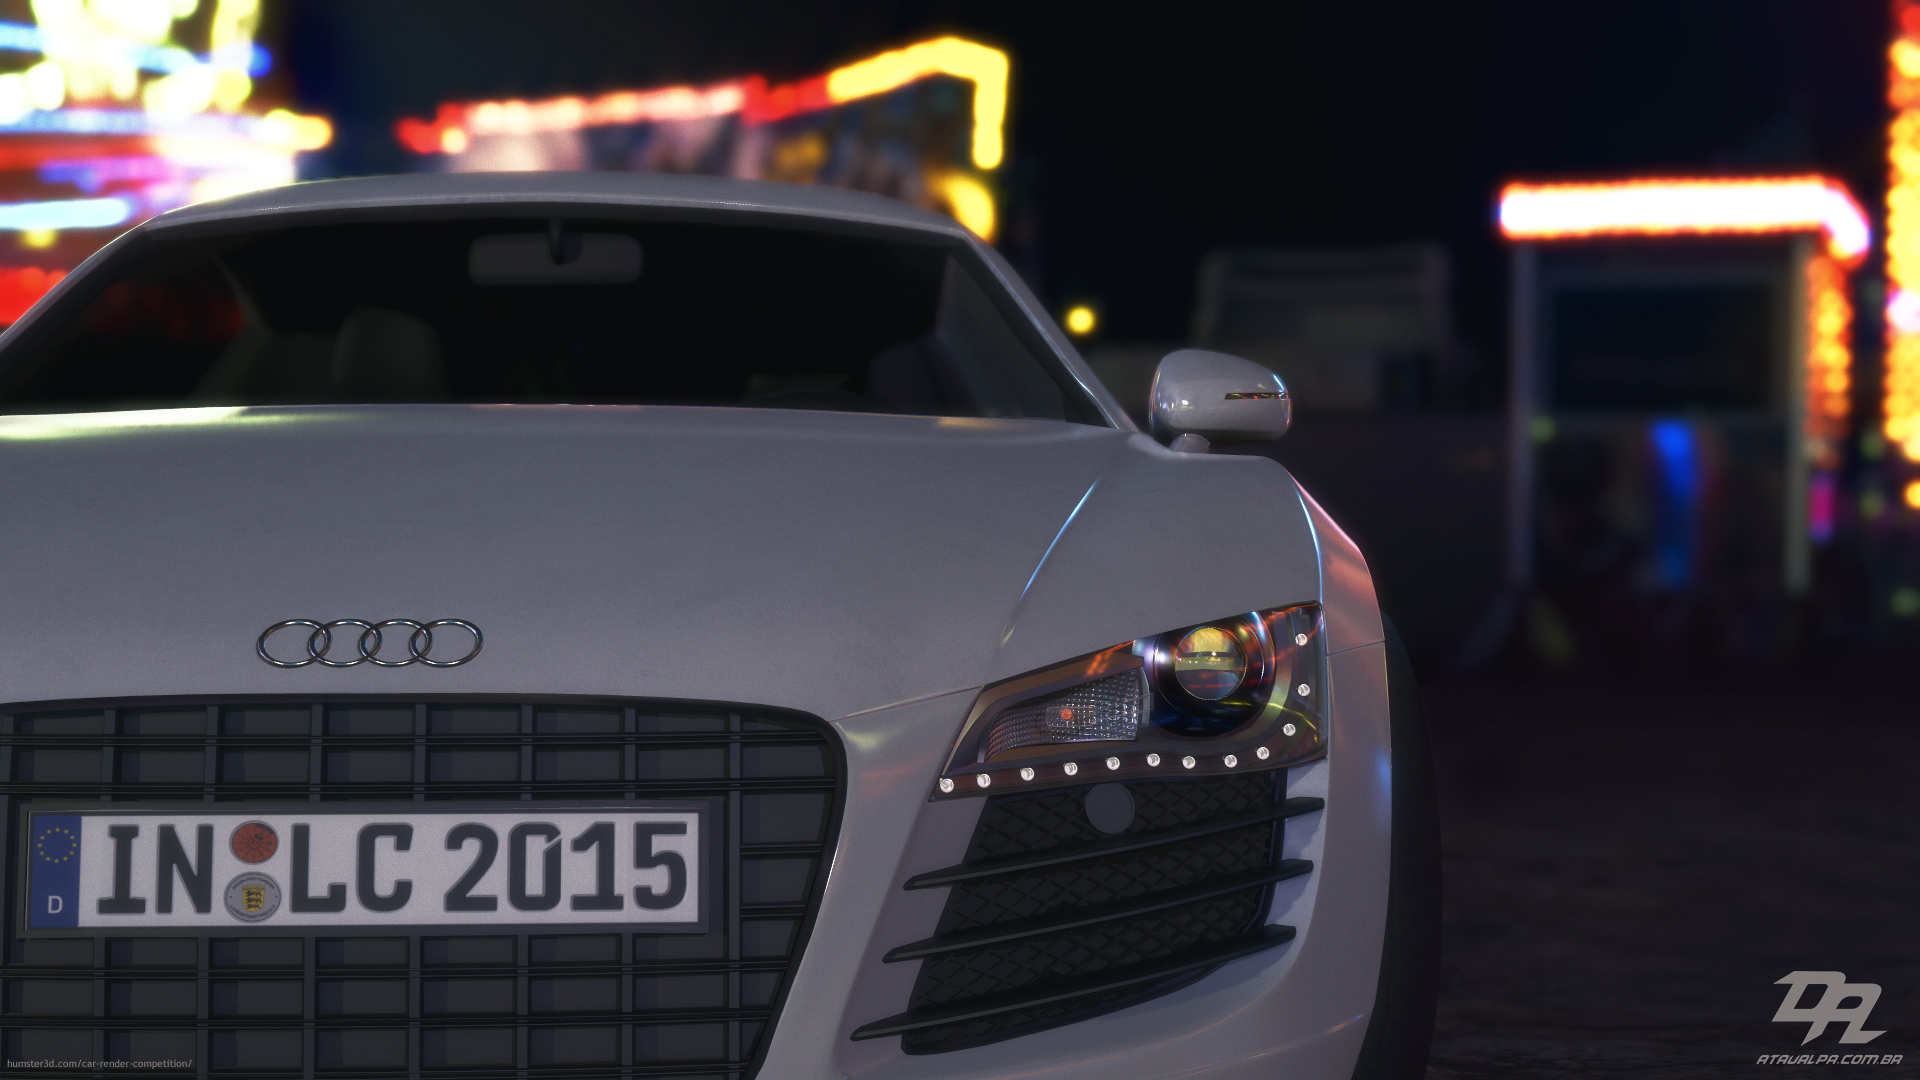 Audi R8 in Real Time 3d art